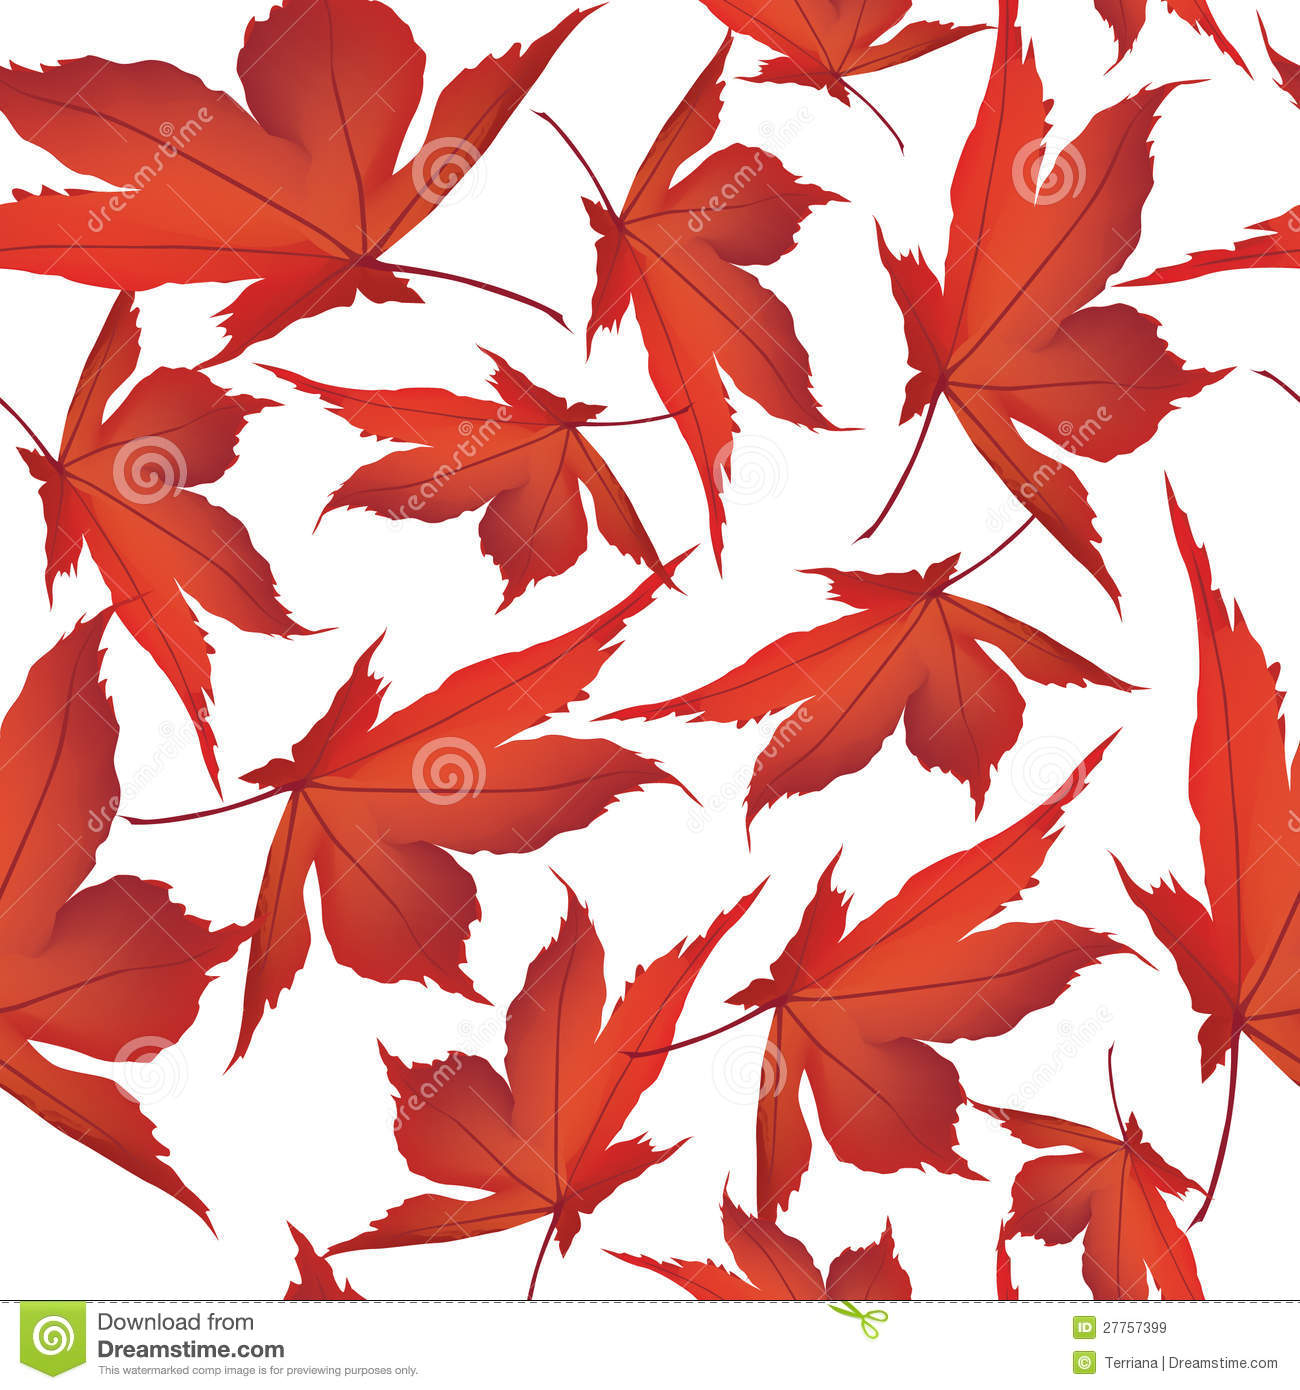 Falling Maple Leaves Wallpaper Autumn Maple Leaves Seamless Pattern Background Royalty